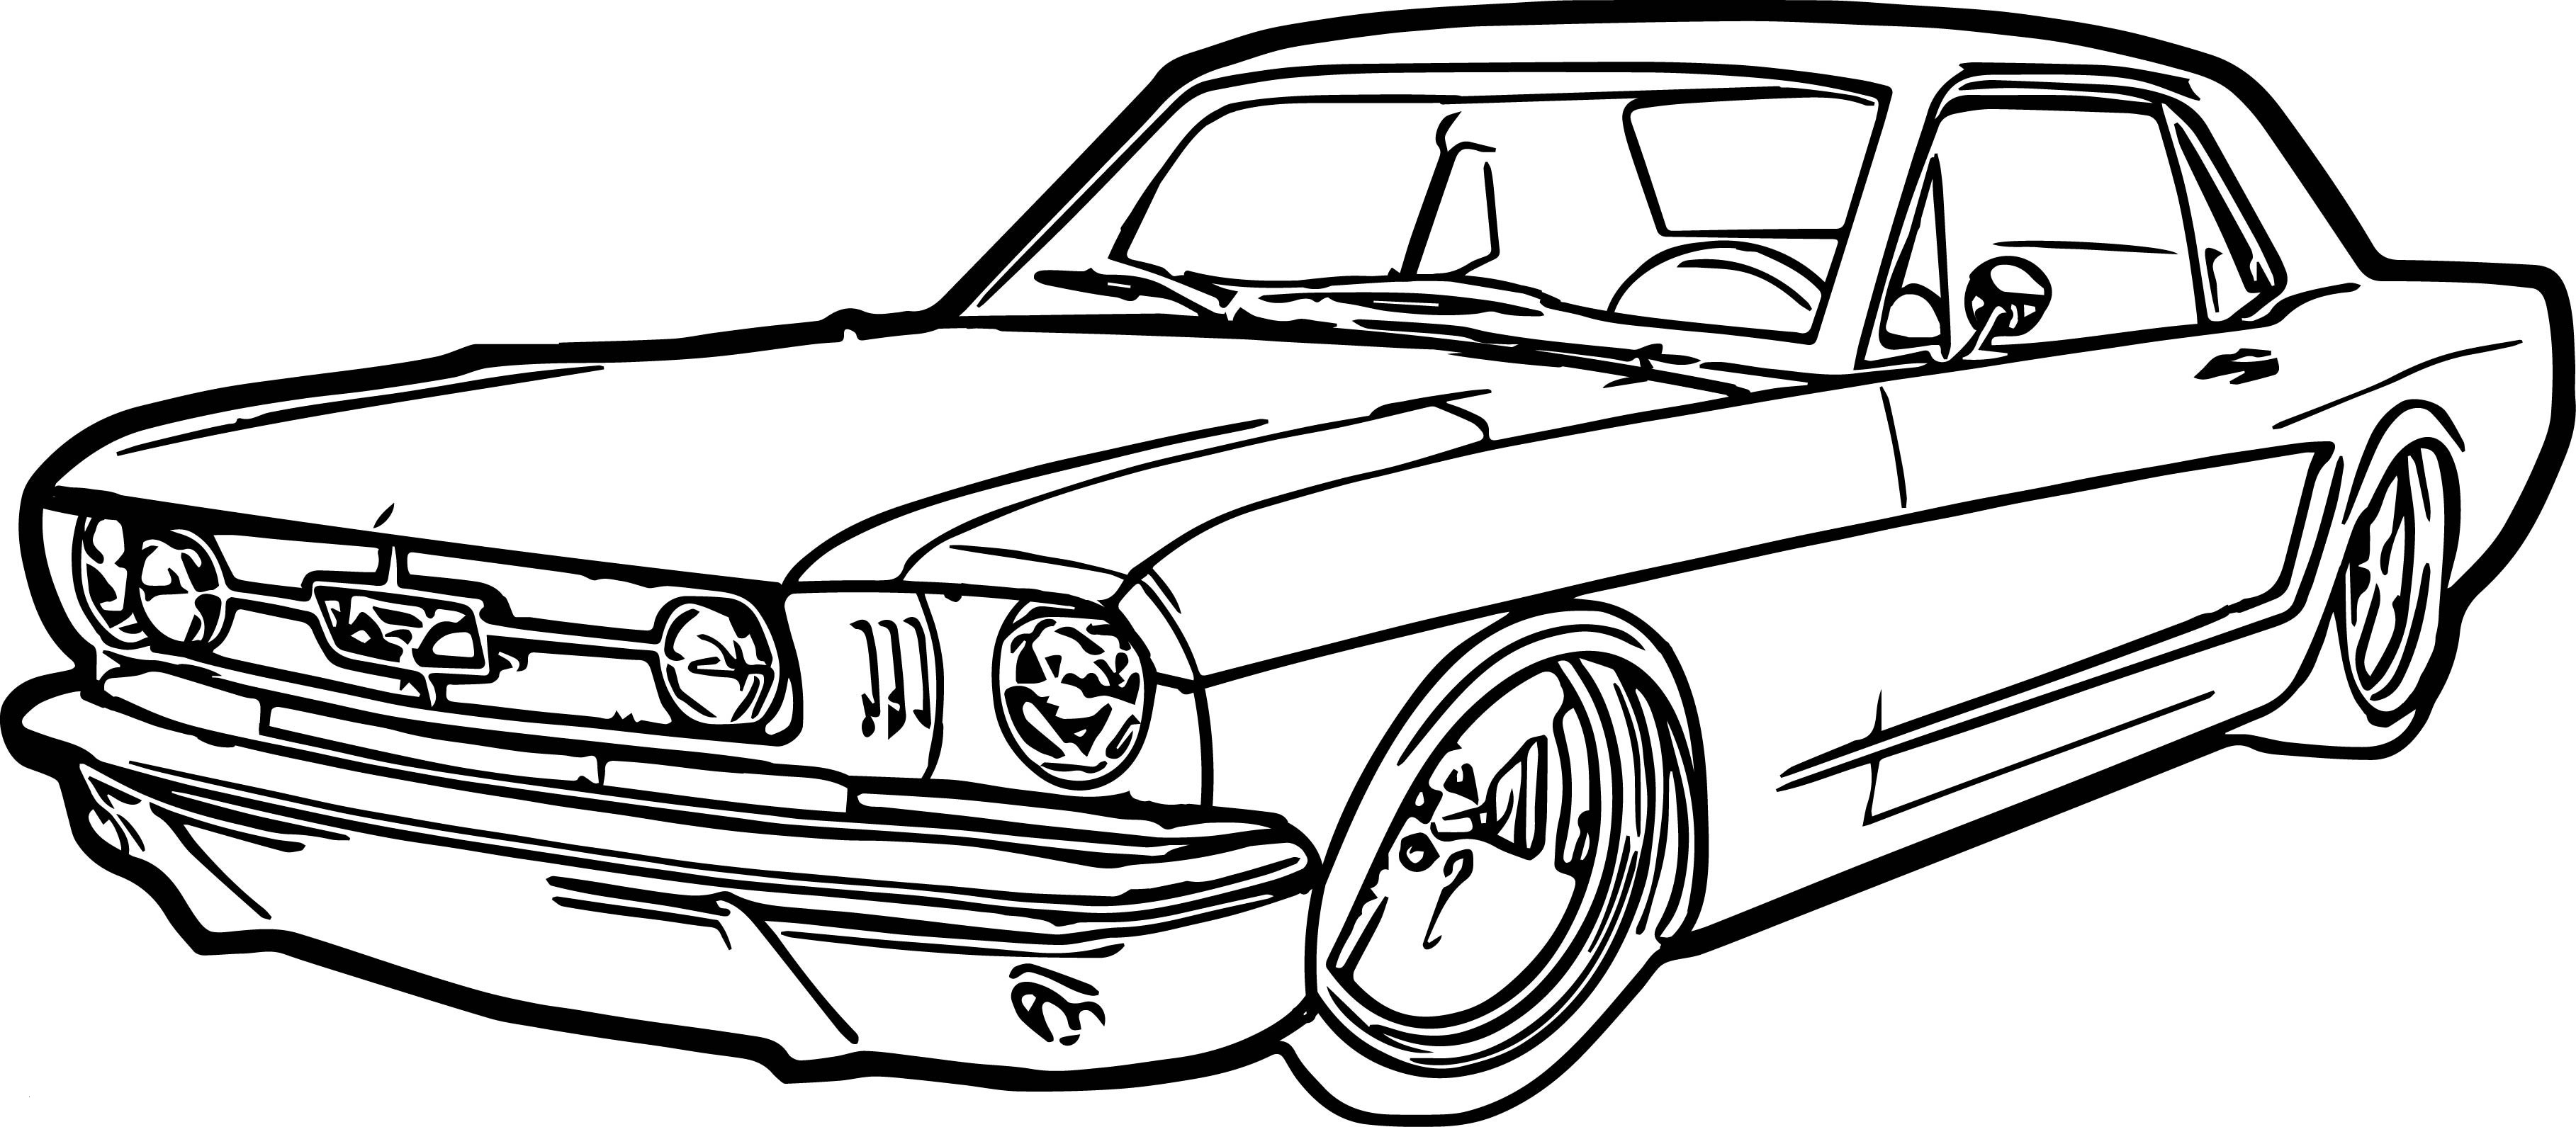 Coloring Pages Of Sports Cars  to Print 15j - Free For kids